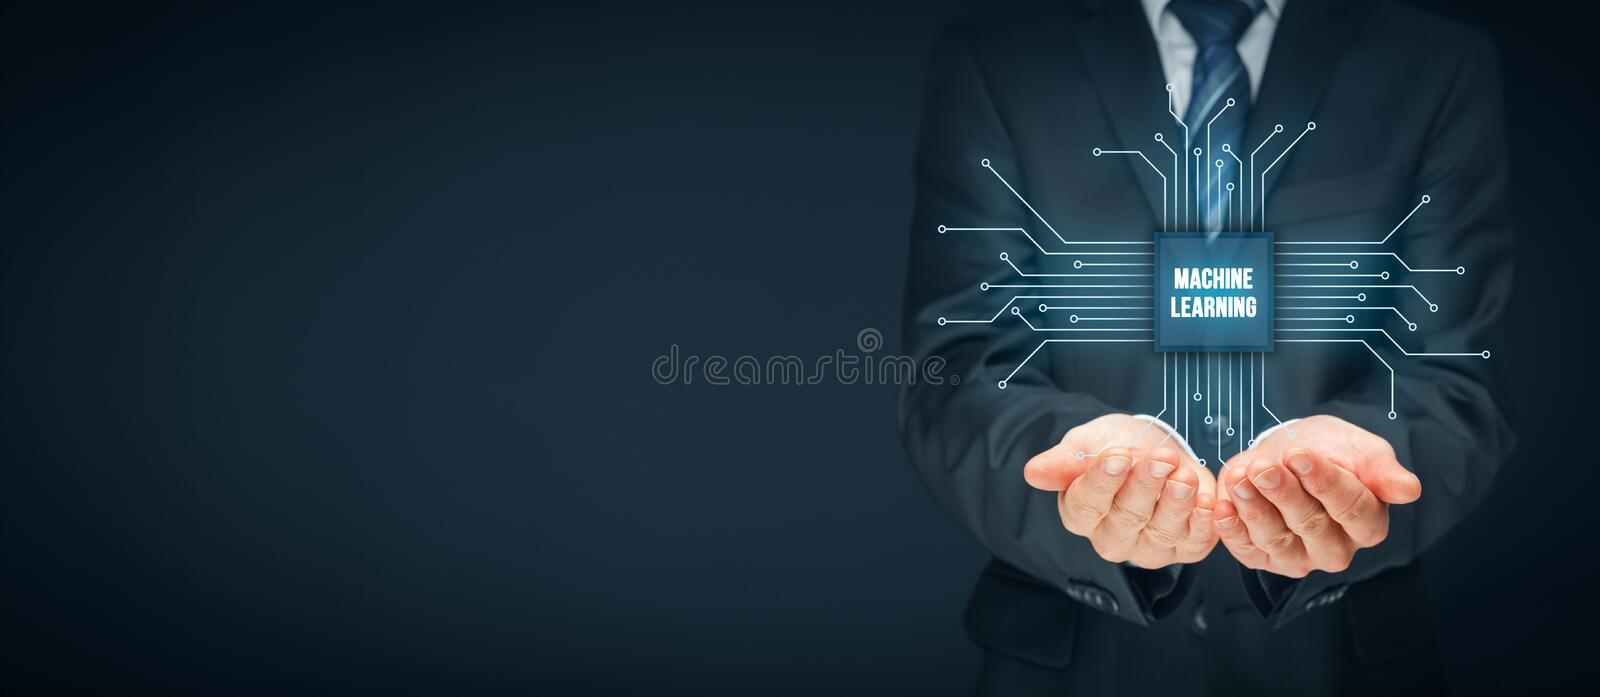 Machine learning concept. Machine learning data analysis concept. Businessman or programmer with abstract symbol of a chip with text machine learning connected royalty free stock photography